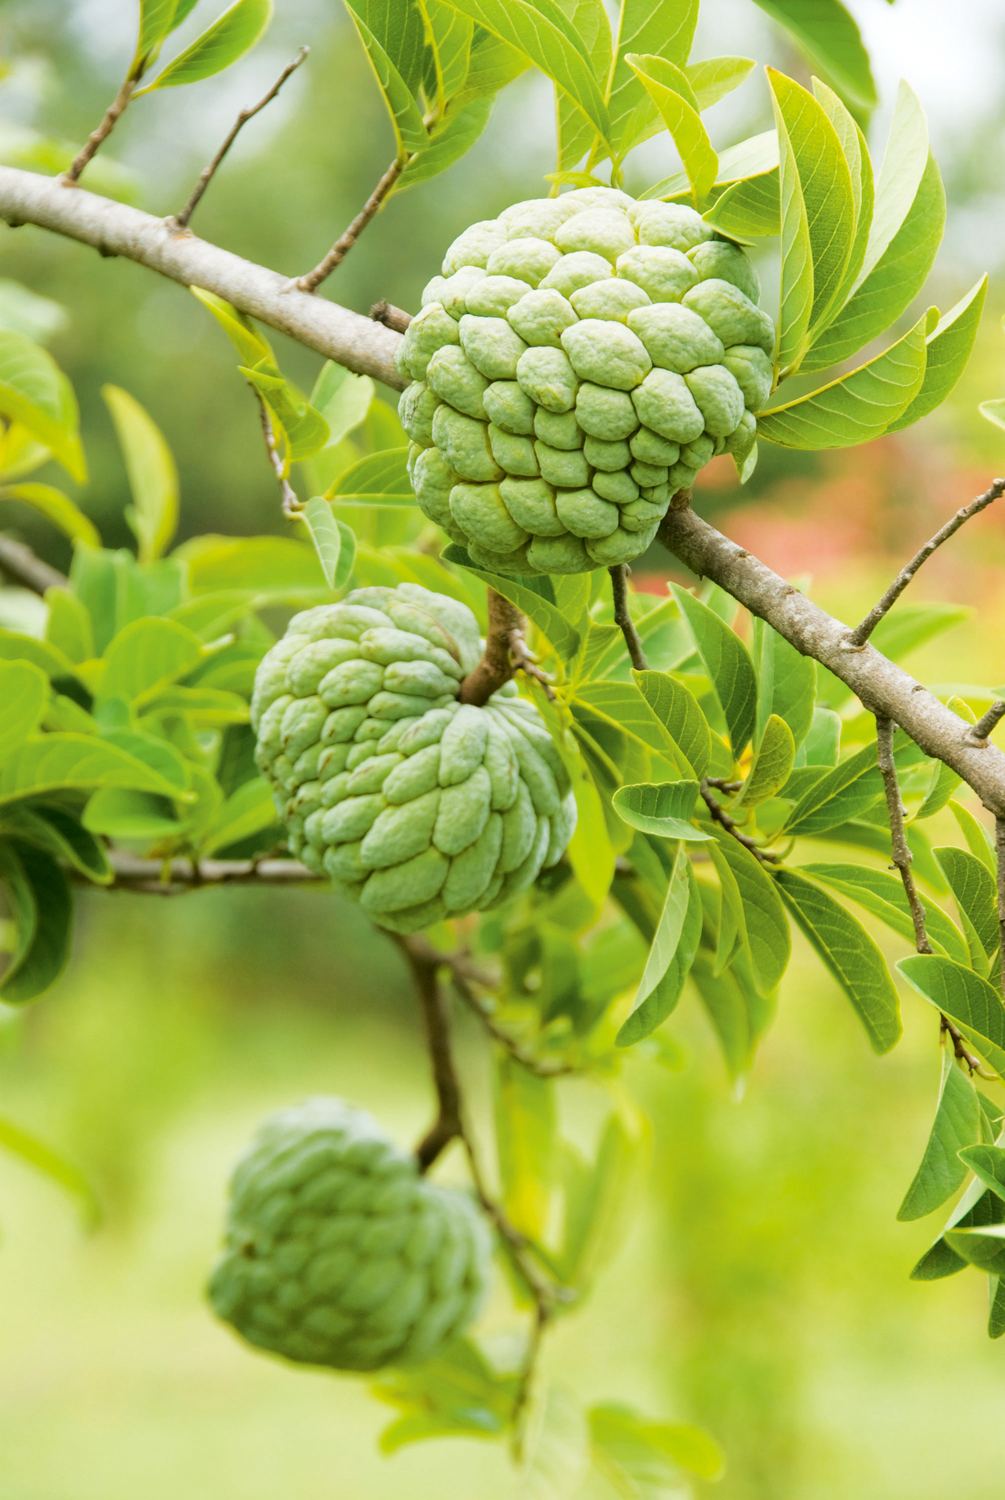 Harvest time for custard apples canstockphoto2874863